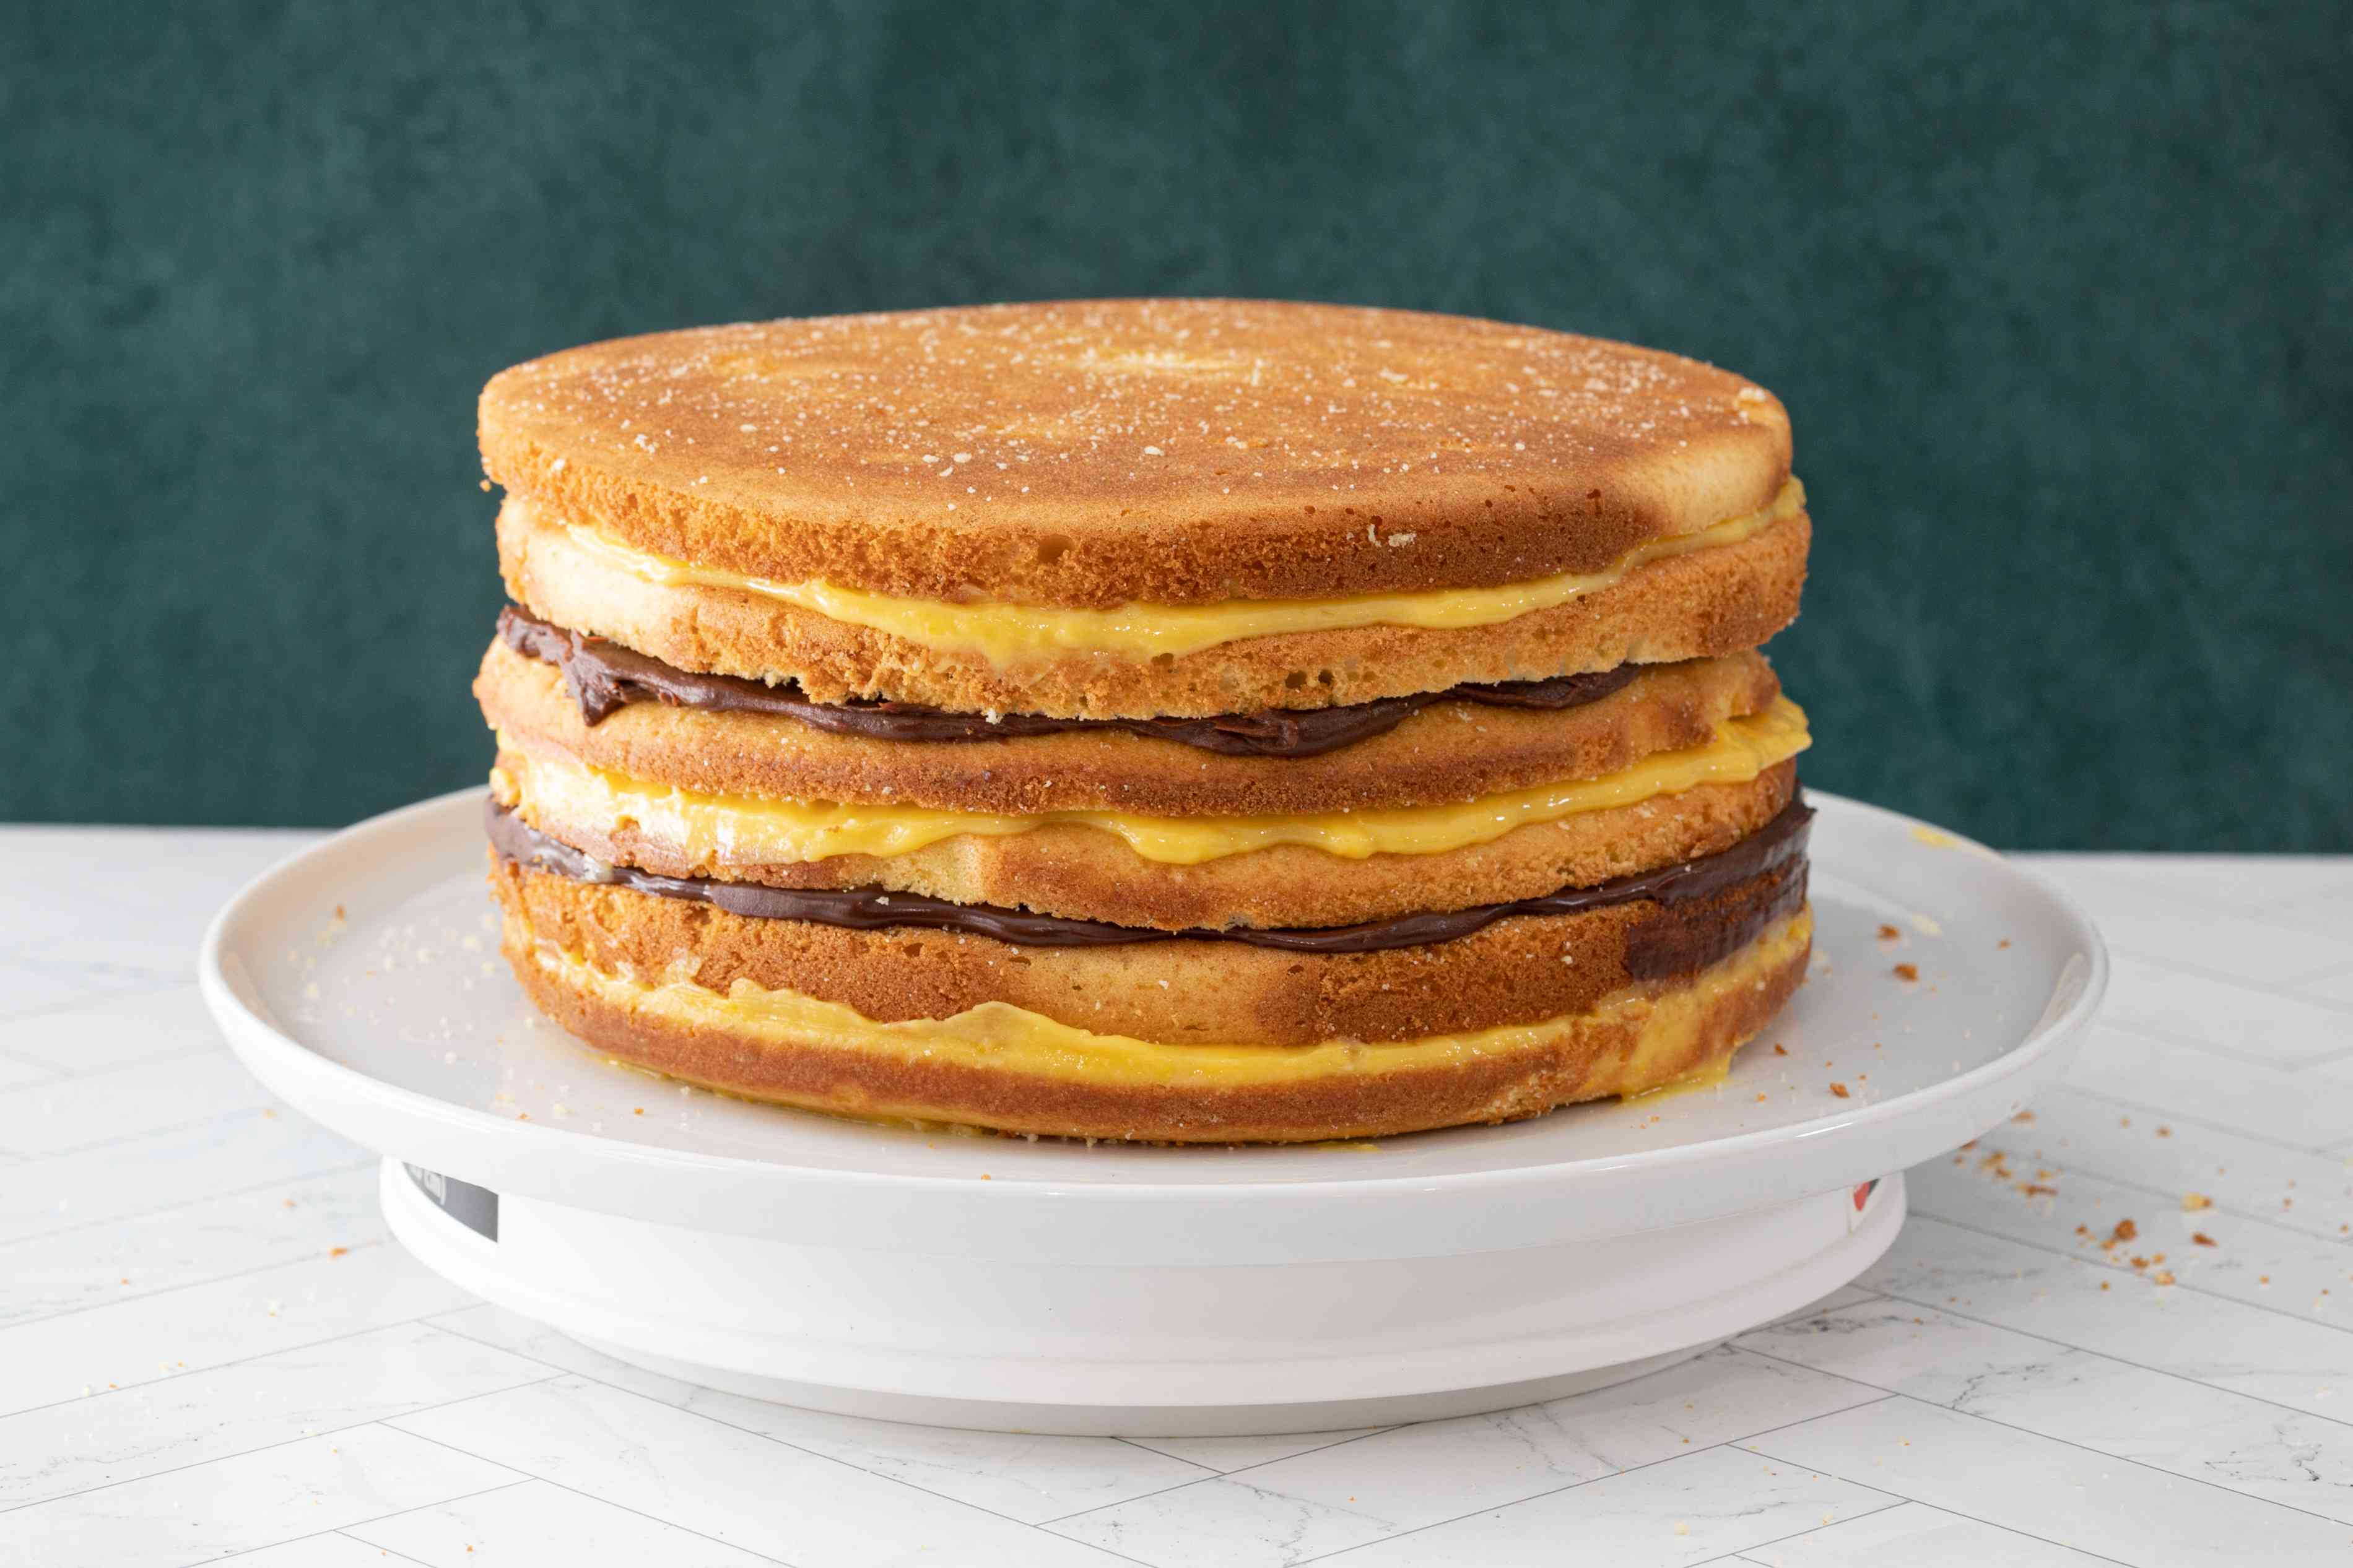 6 cake layers with alternating chocolate and lemon fillings